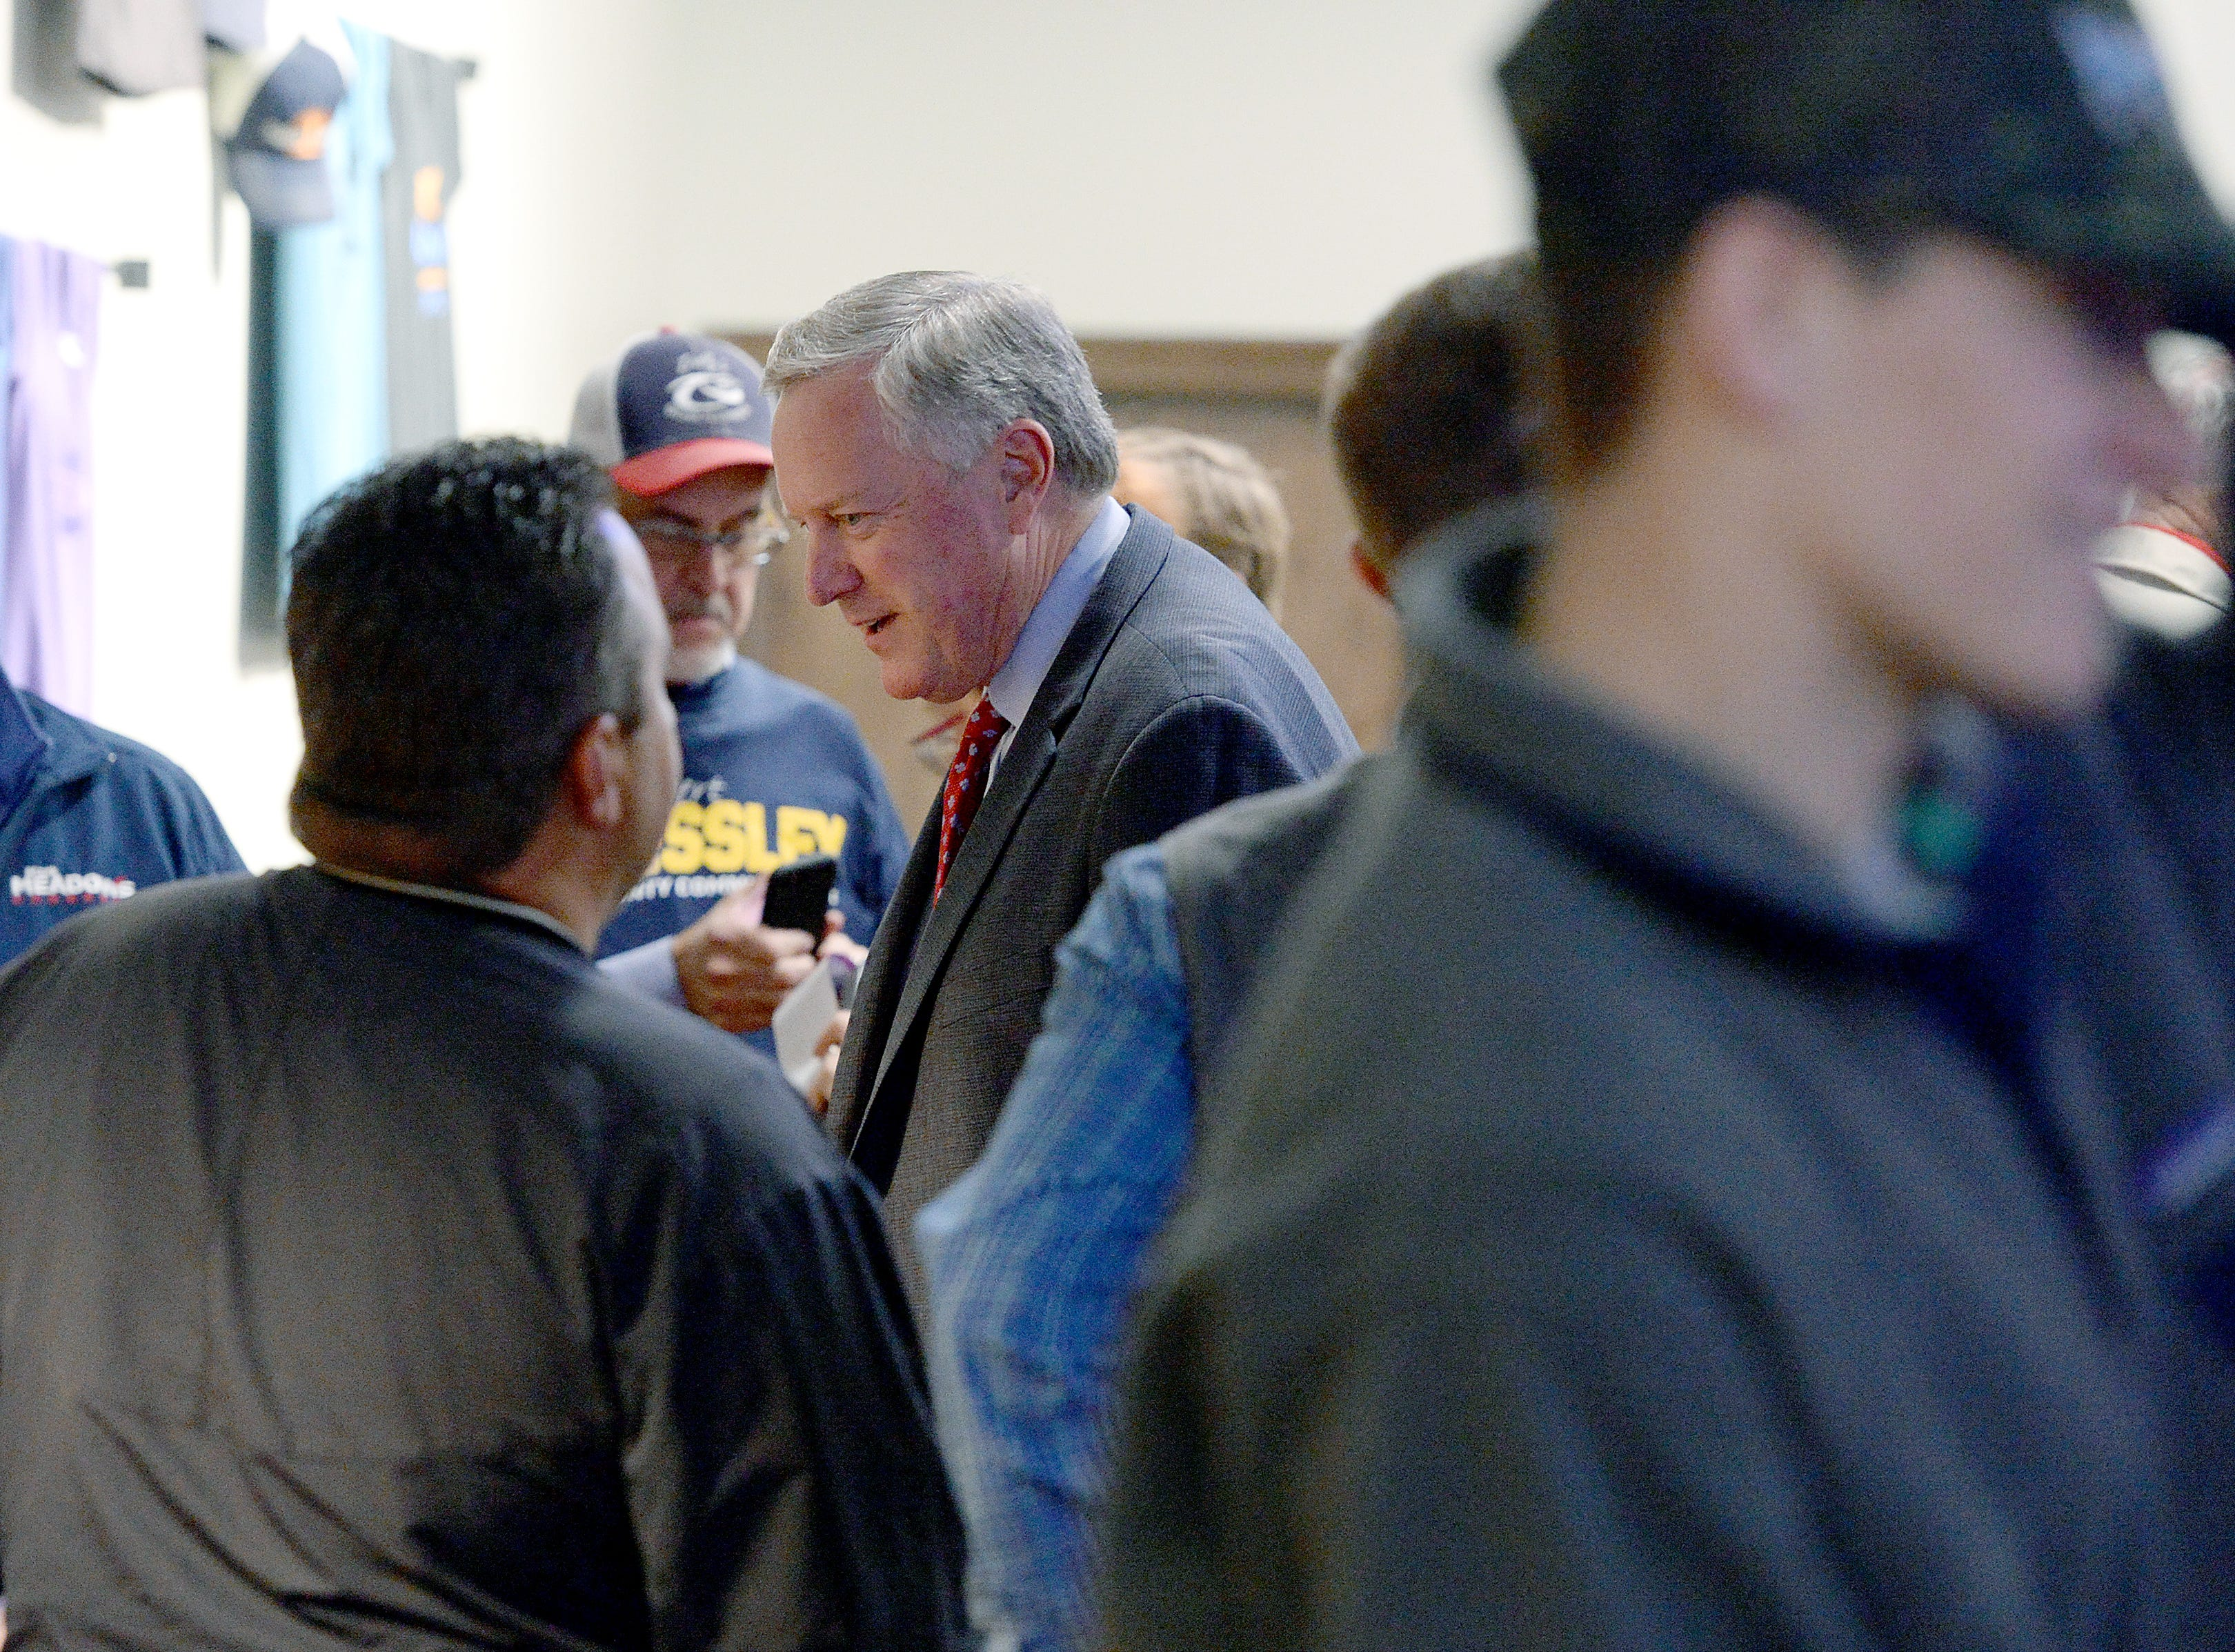 U.S. Representative for District 11 Mark Meadows talks with Buncombe County Sheriff candidate Shad Higgins and other supporters at an election results watch party for the Buncombe County Republicans at Twisted Laurel on Nov. 6, 2018.